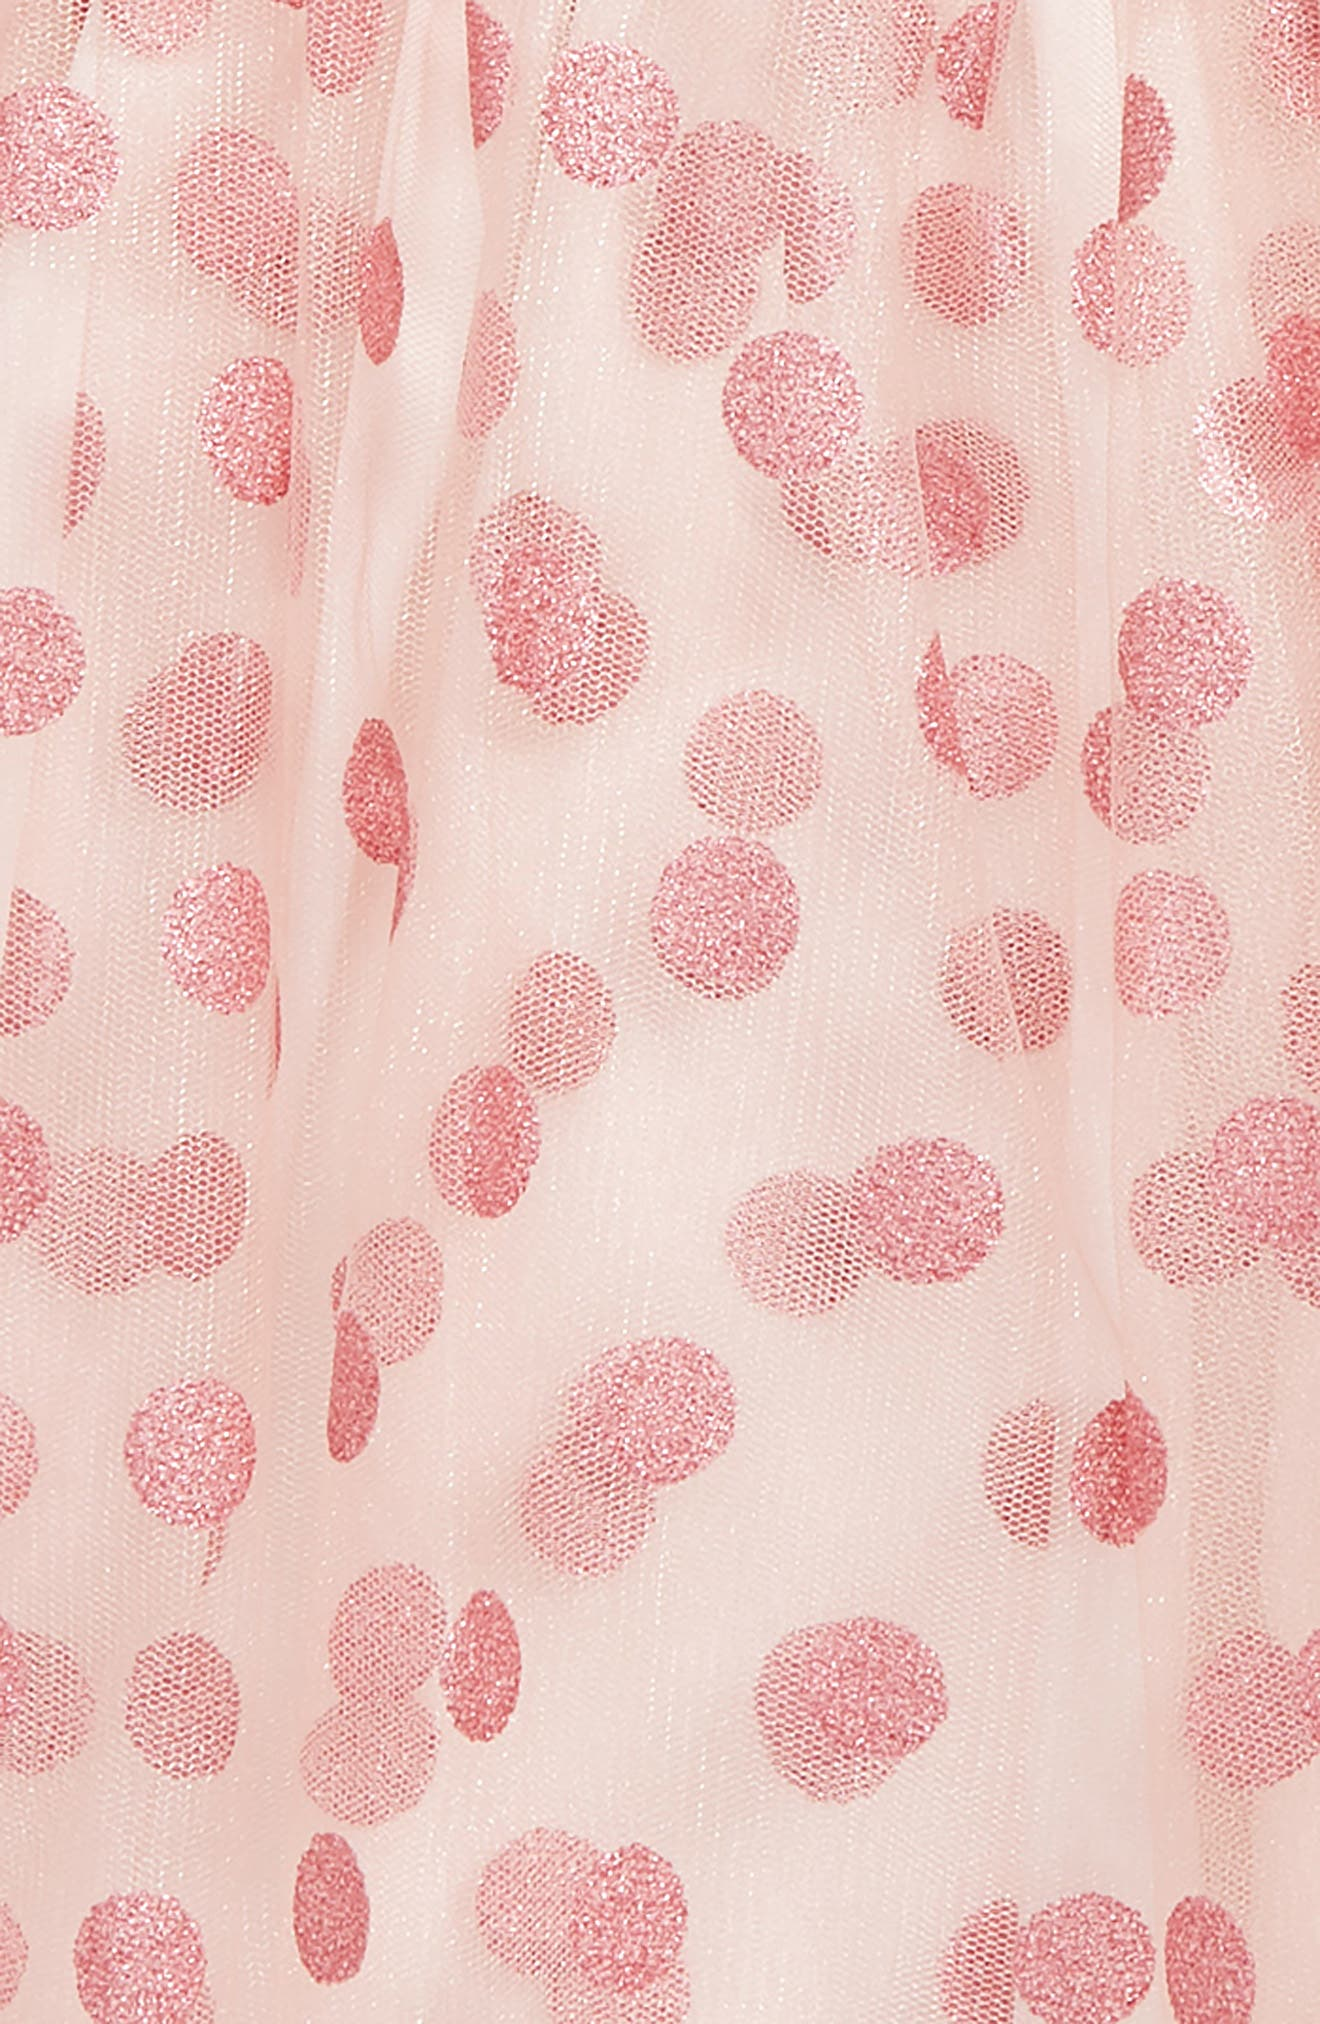 Sparkle Tulle Skirt,                             Alternate thumbnail 2, color,                             PINK PEACHSKIN DOT